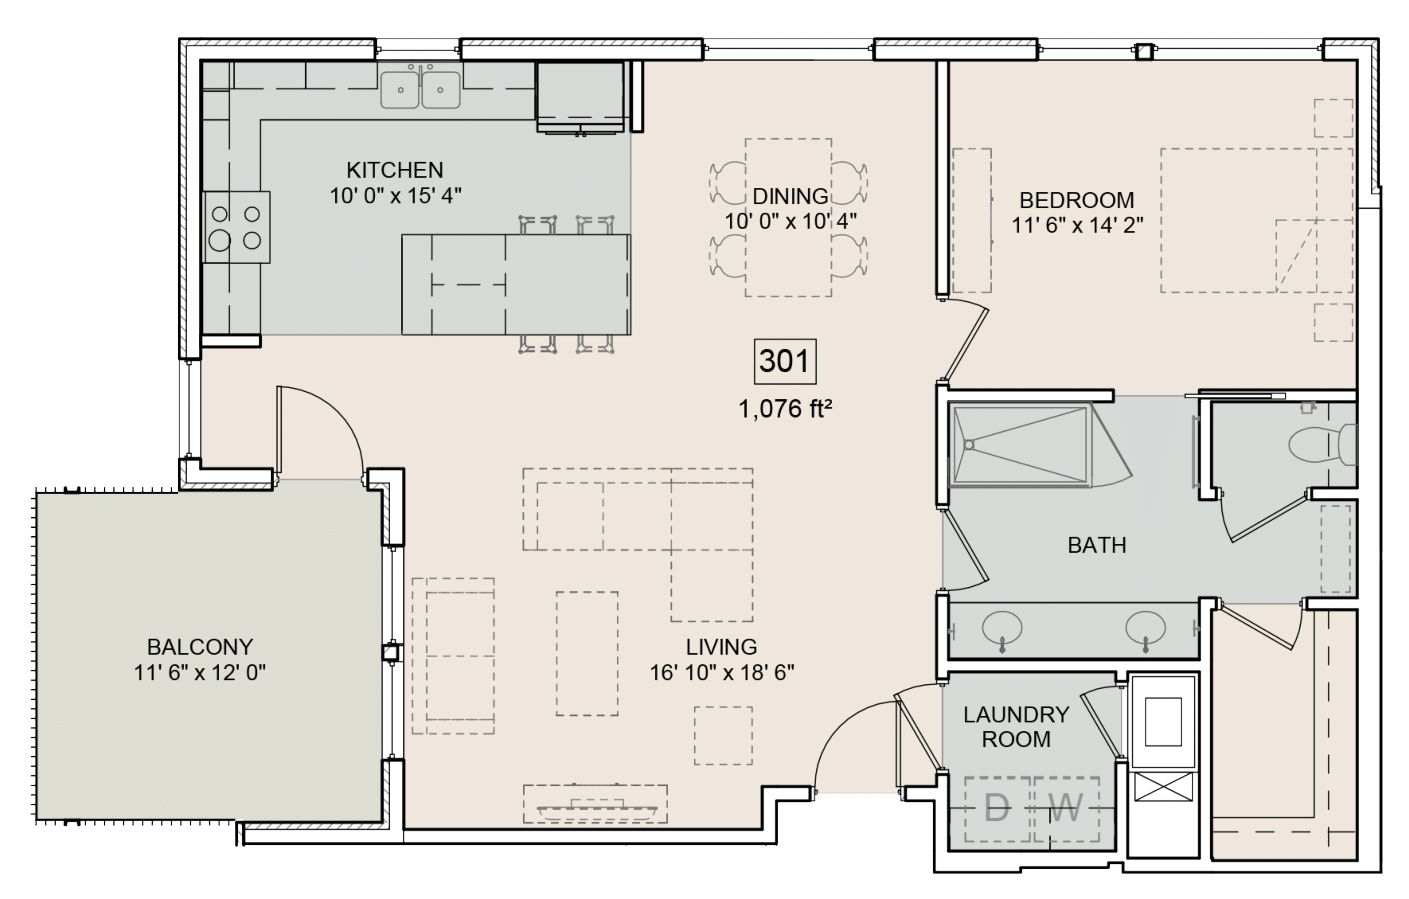 A Austen unit with 1 Bedrooms and 1 Bathrooms with area of 1076 sq. ft